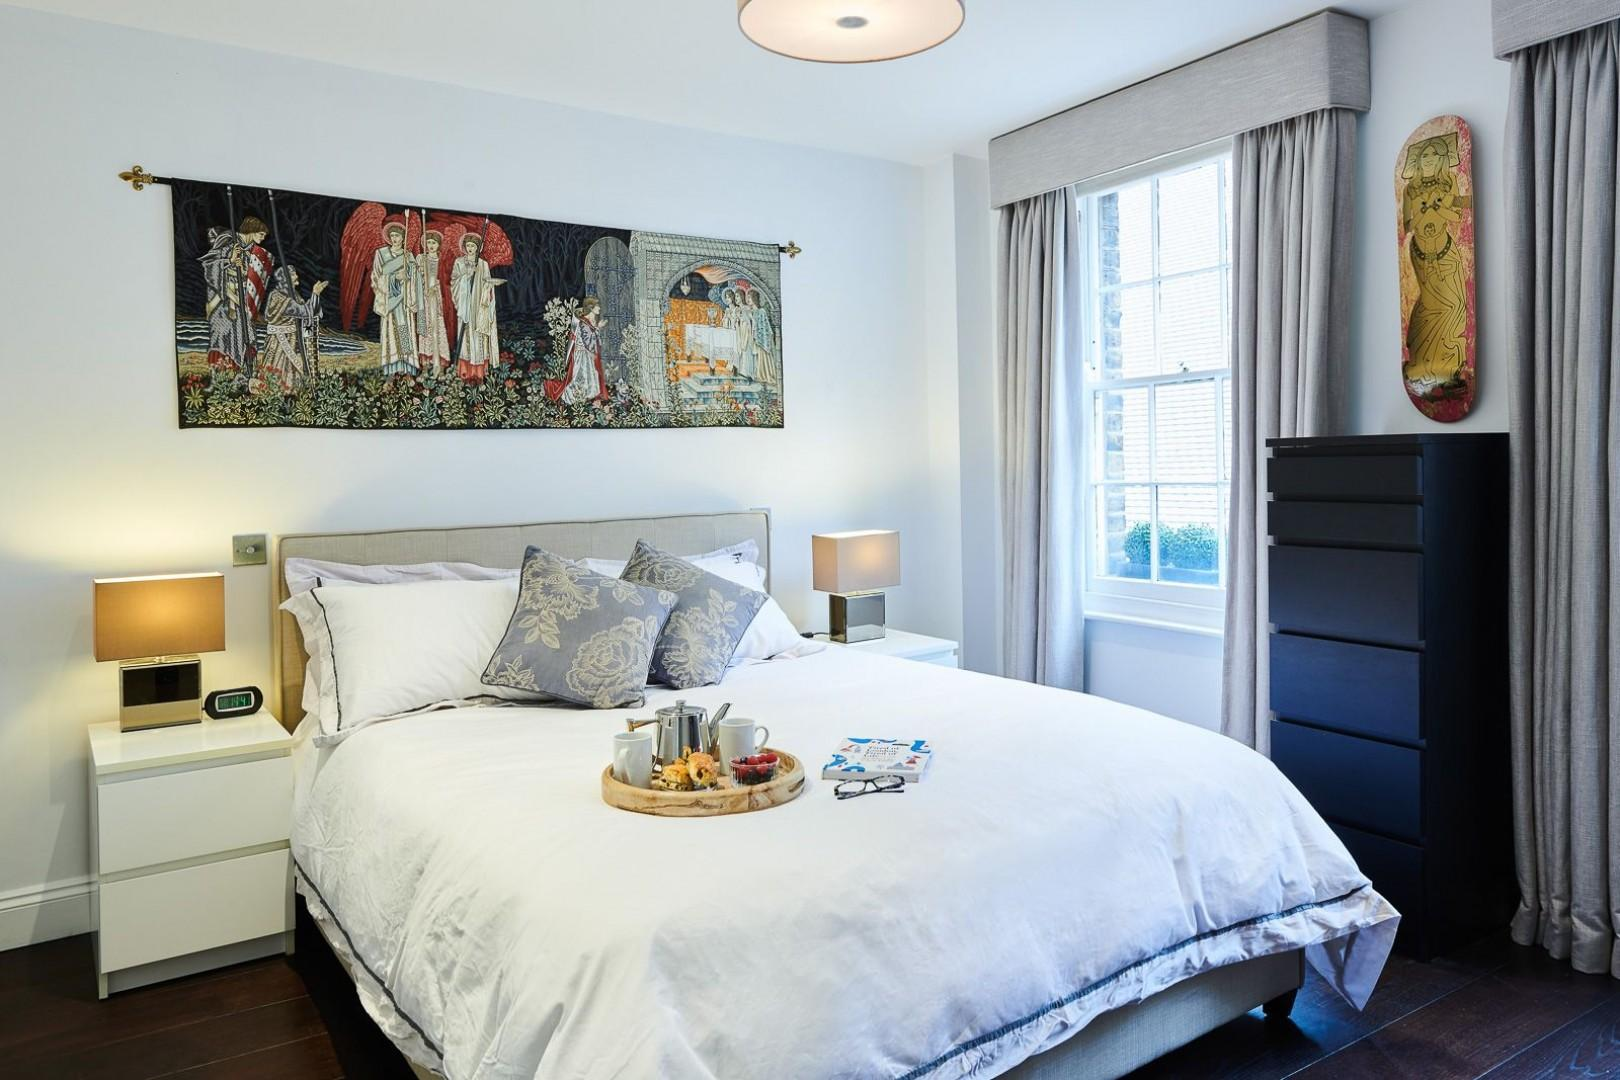 Beautifully designed first bedroom